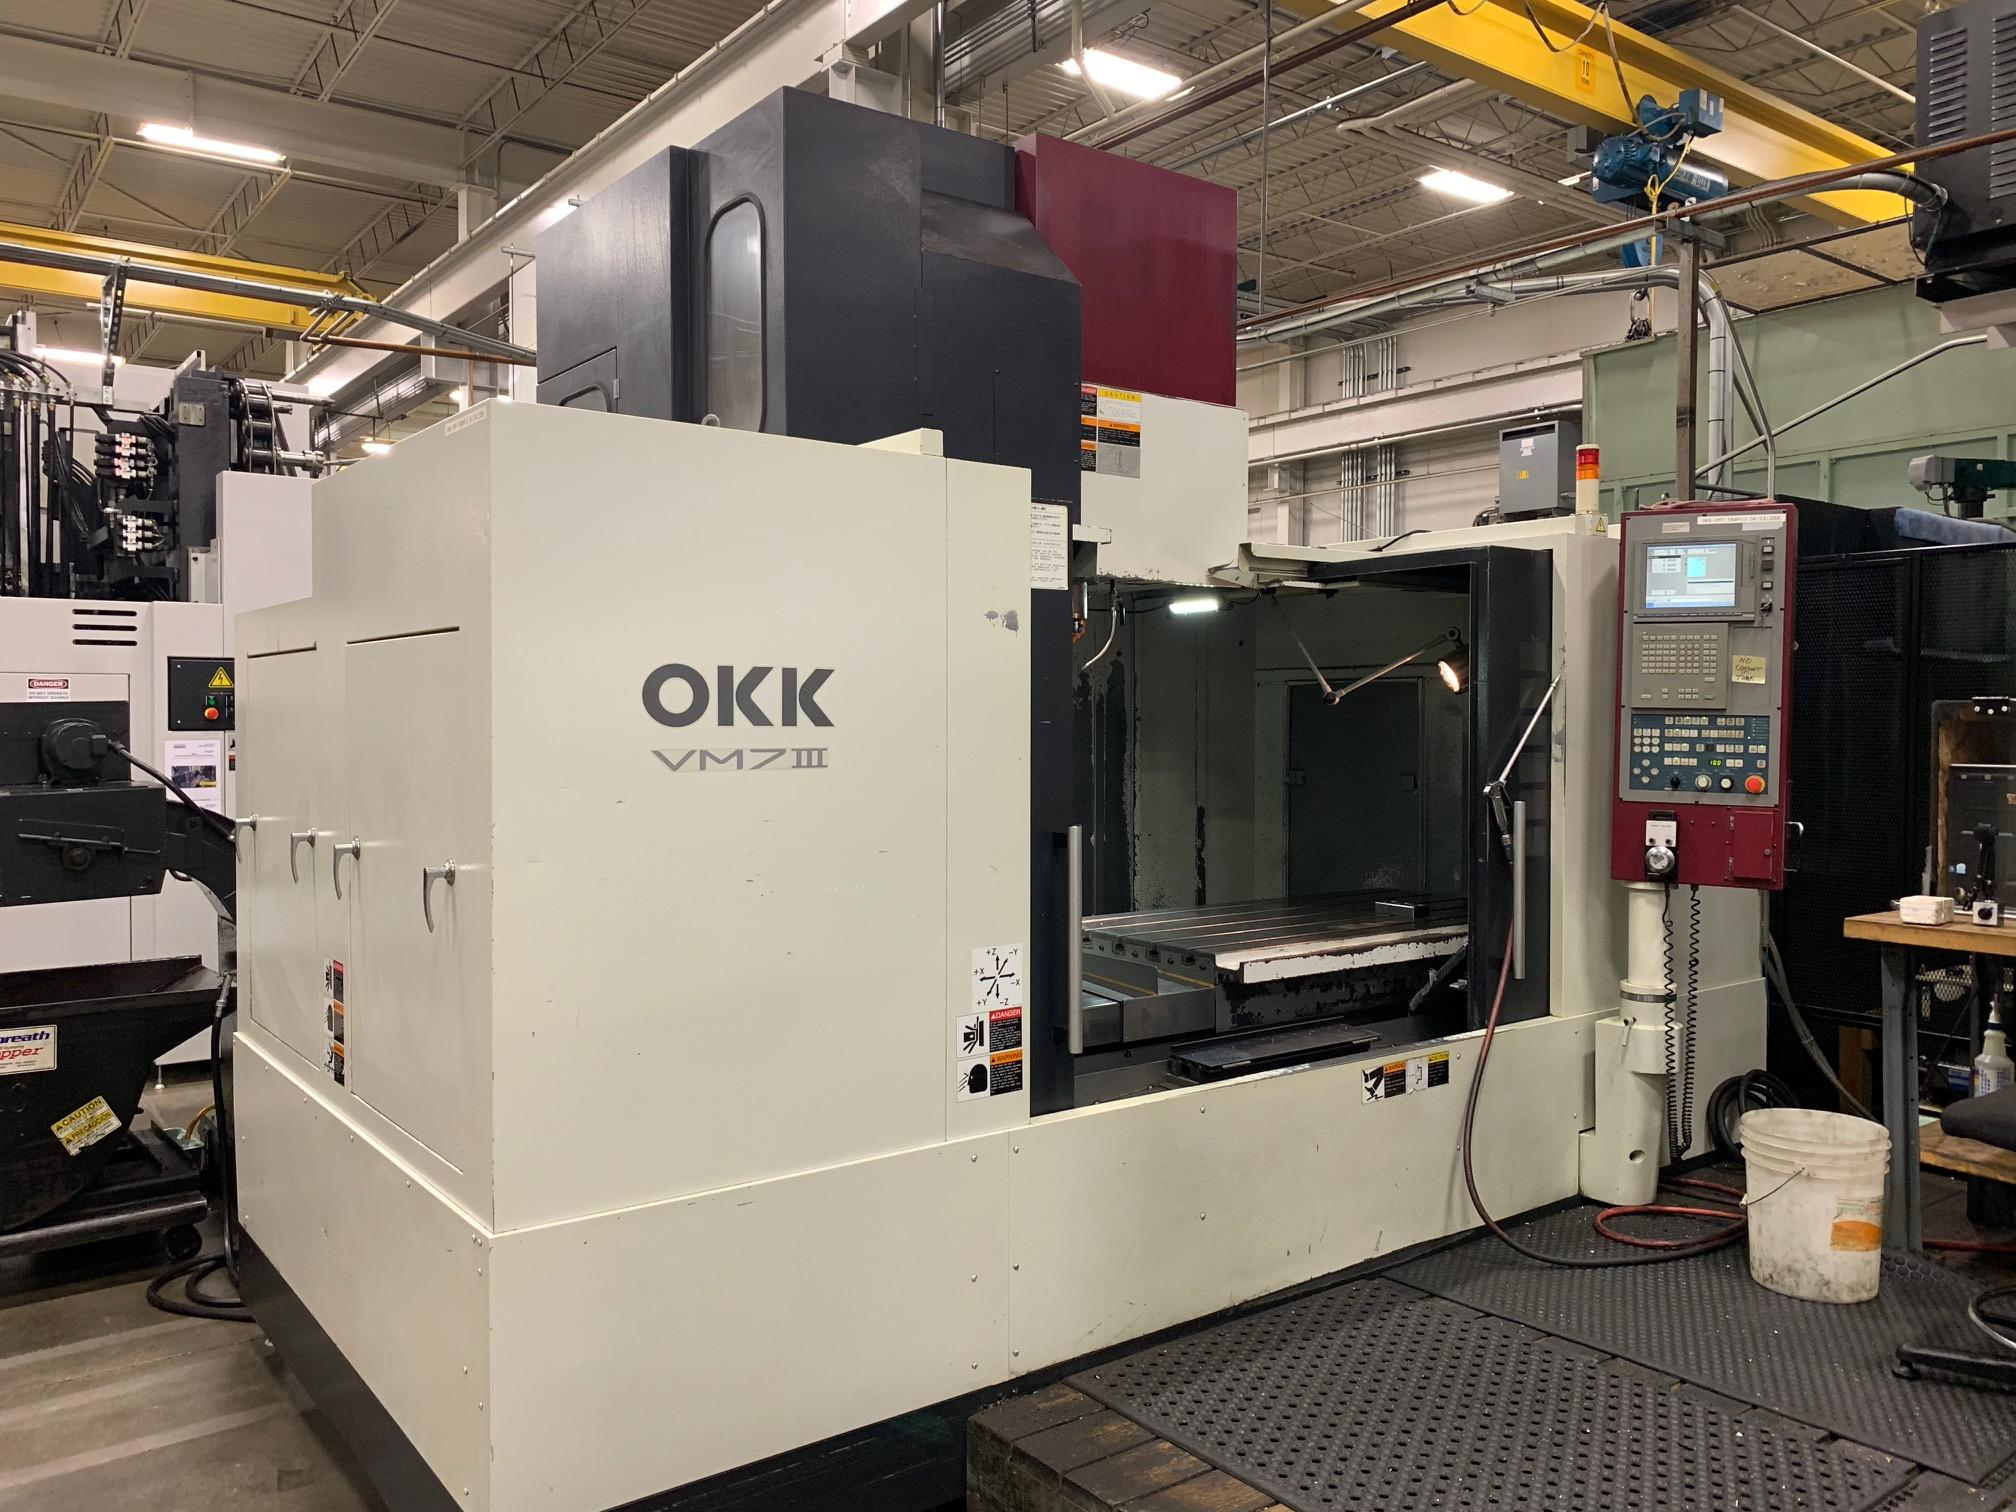 2006 OKK VM-7 III - Vertical Machining Center